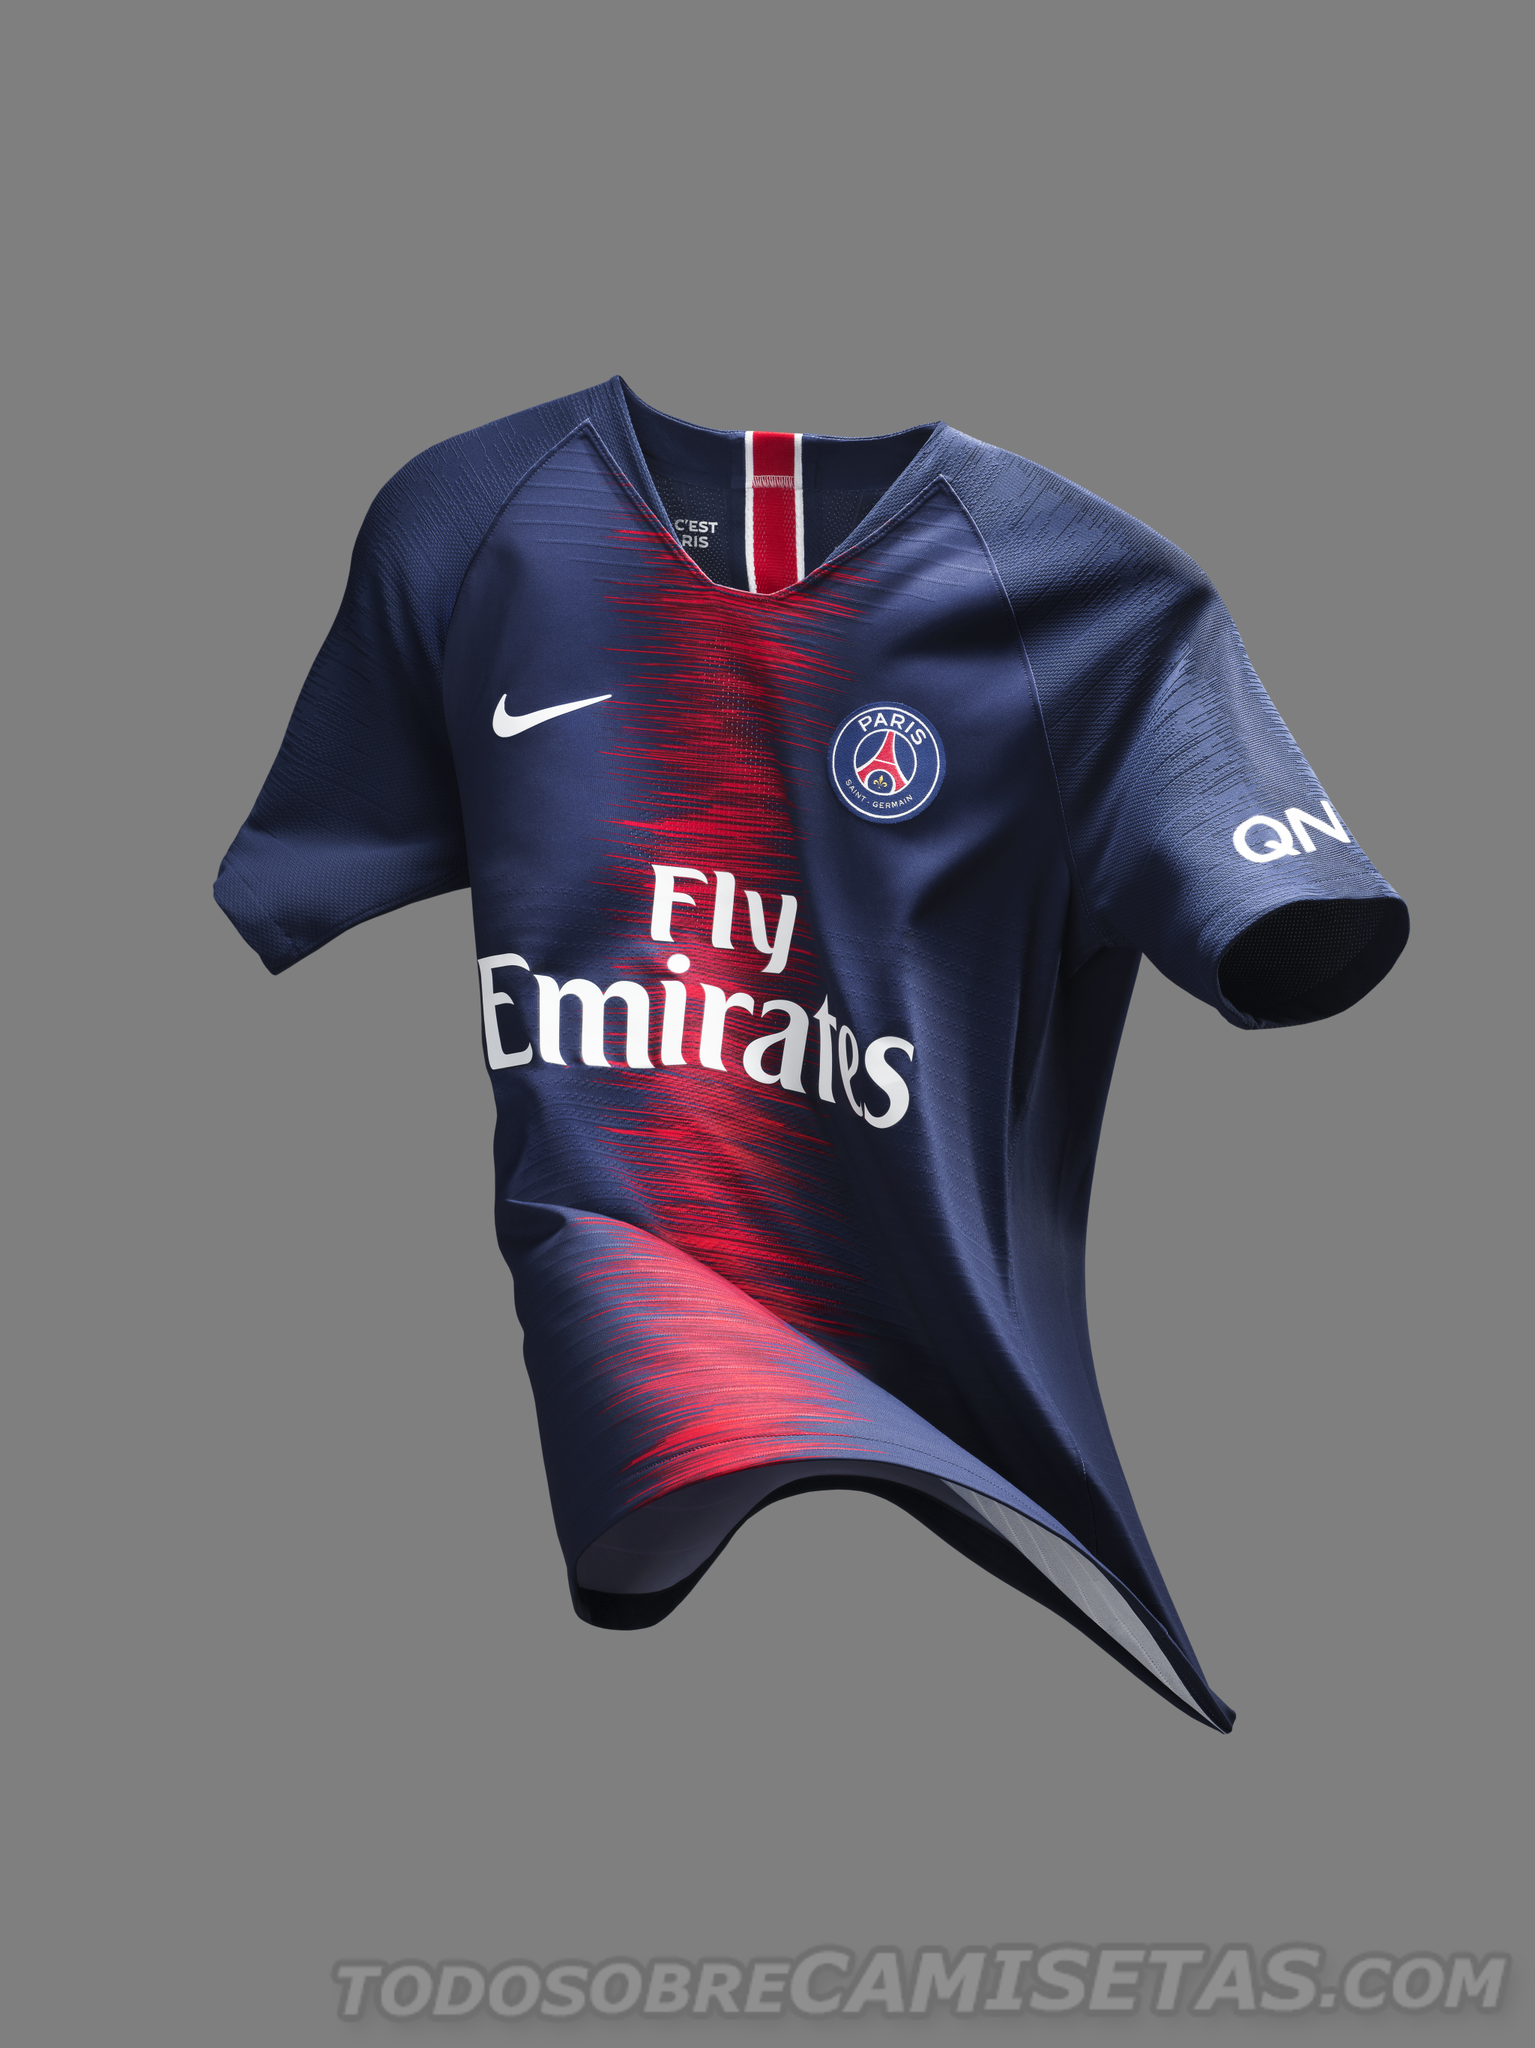 PSG 2018 19 Nike Home Kit  173cec69ef1a0